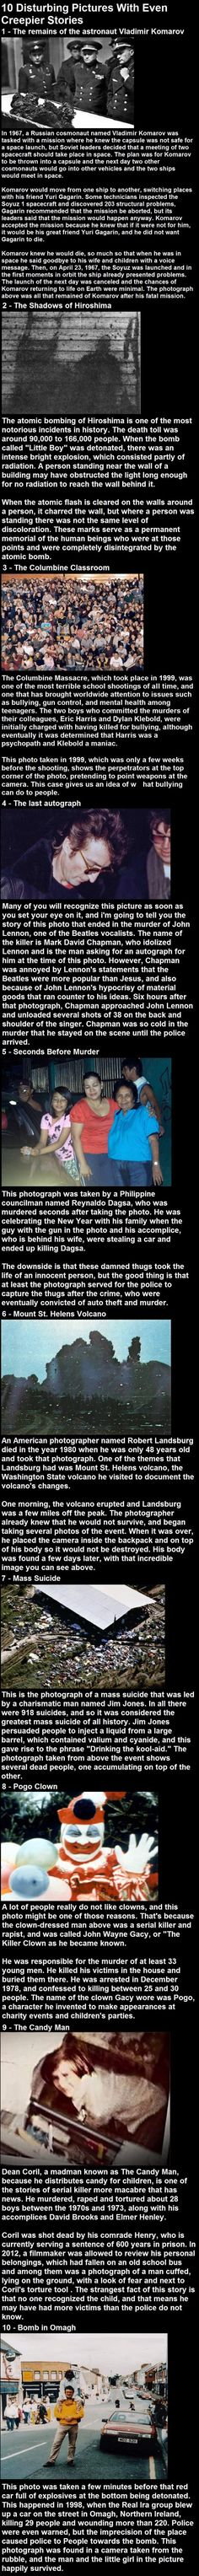 10 Disturbing Pictures With Even Creepier Stories The Columbine one is fake, but the rest make it an interesting article. Creepy Stories, Ghost Stories, The Babadook, Spooky Scary, Interesting History, Interesting Facts, Wtf Fun Facts, Urban Legends, The More You Know